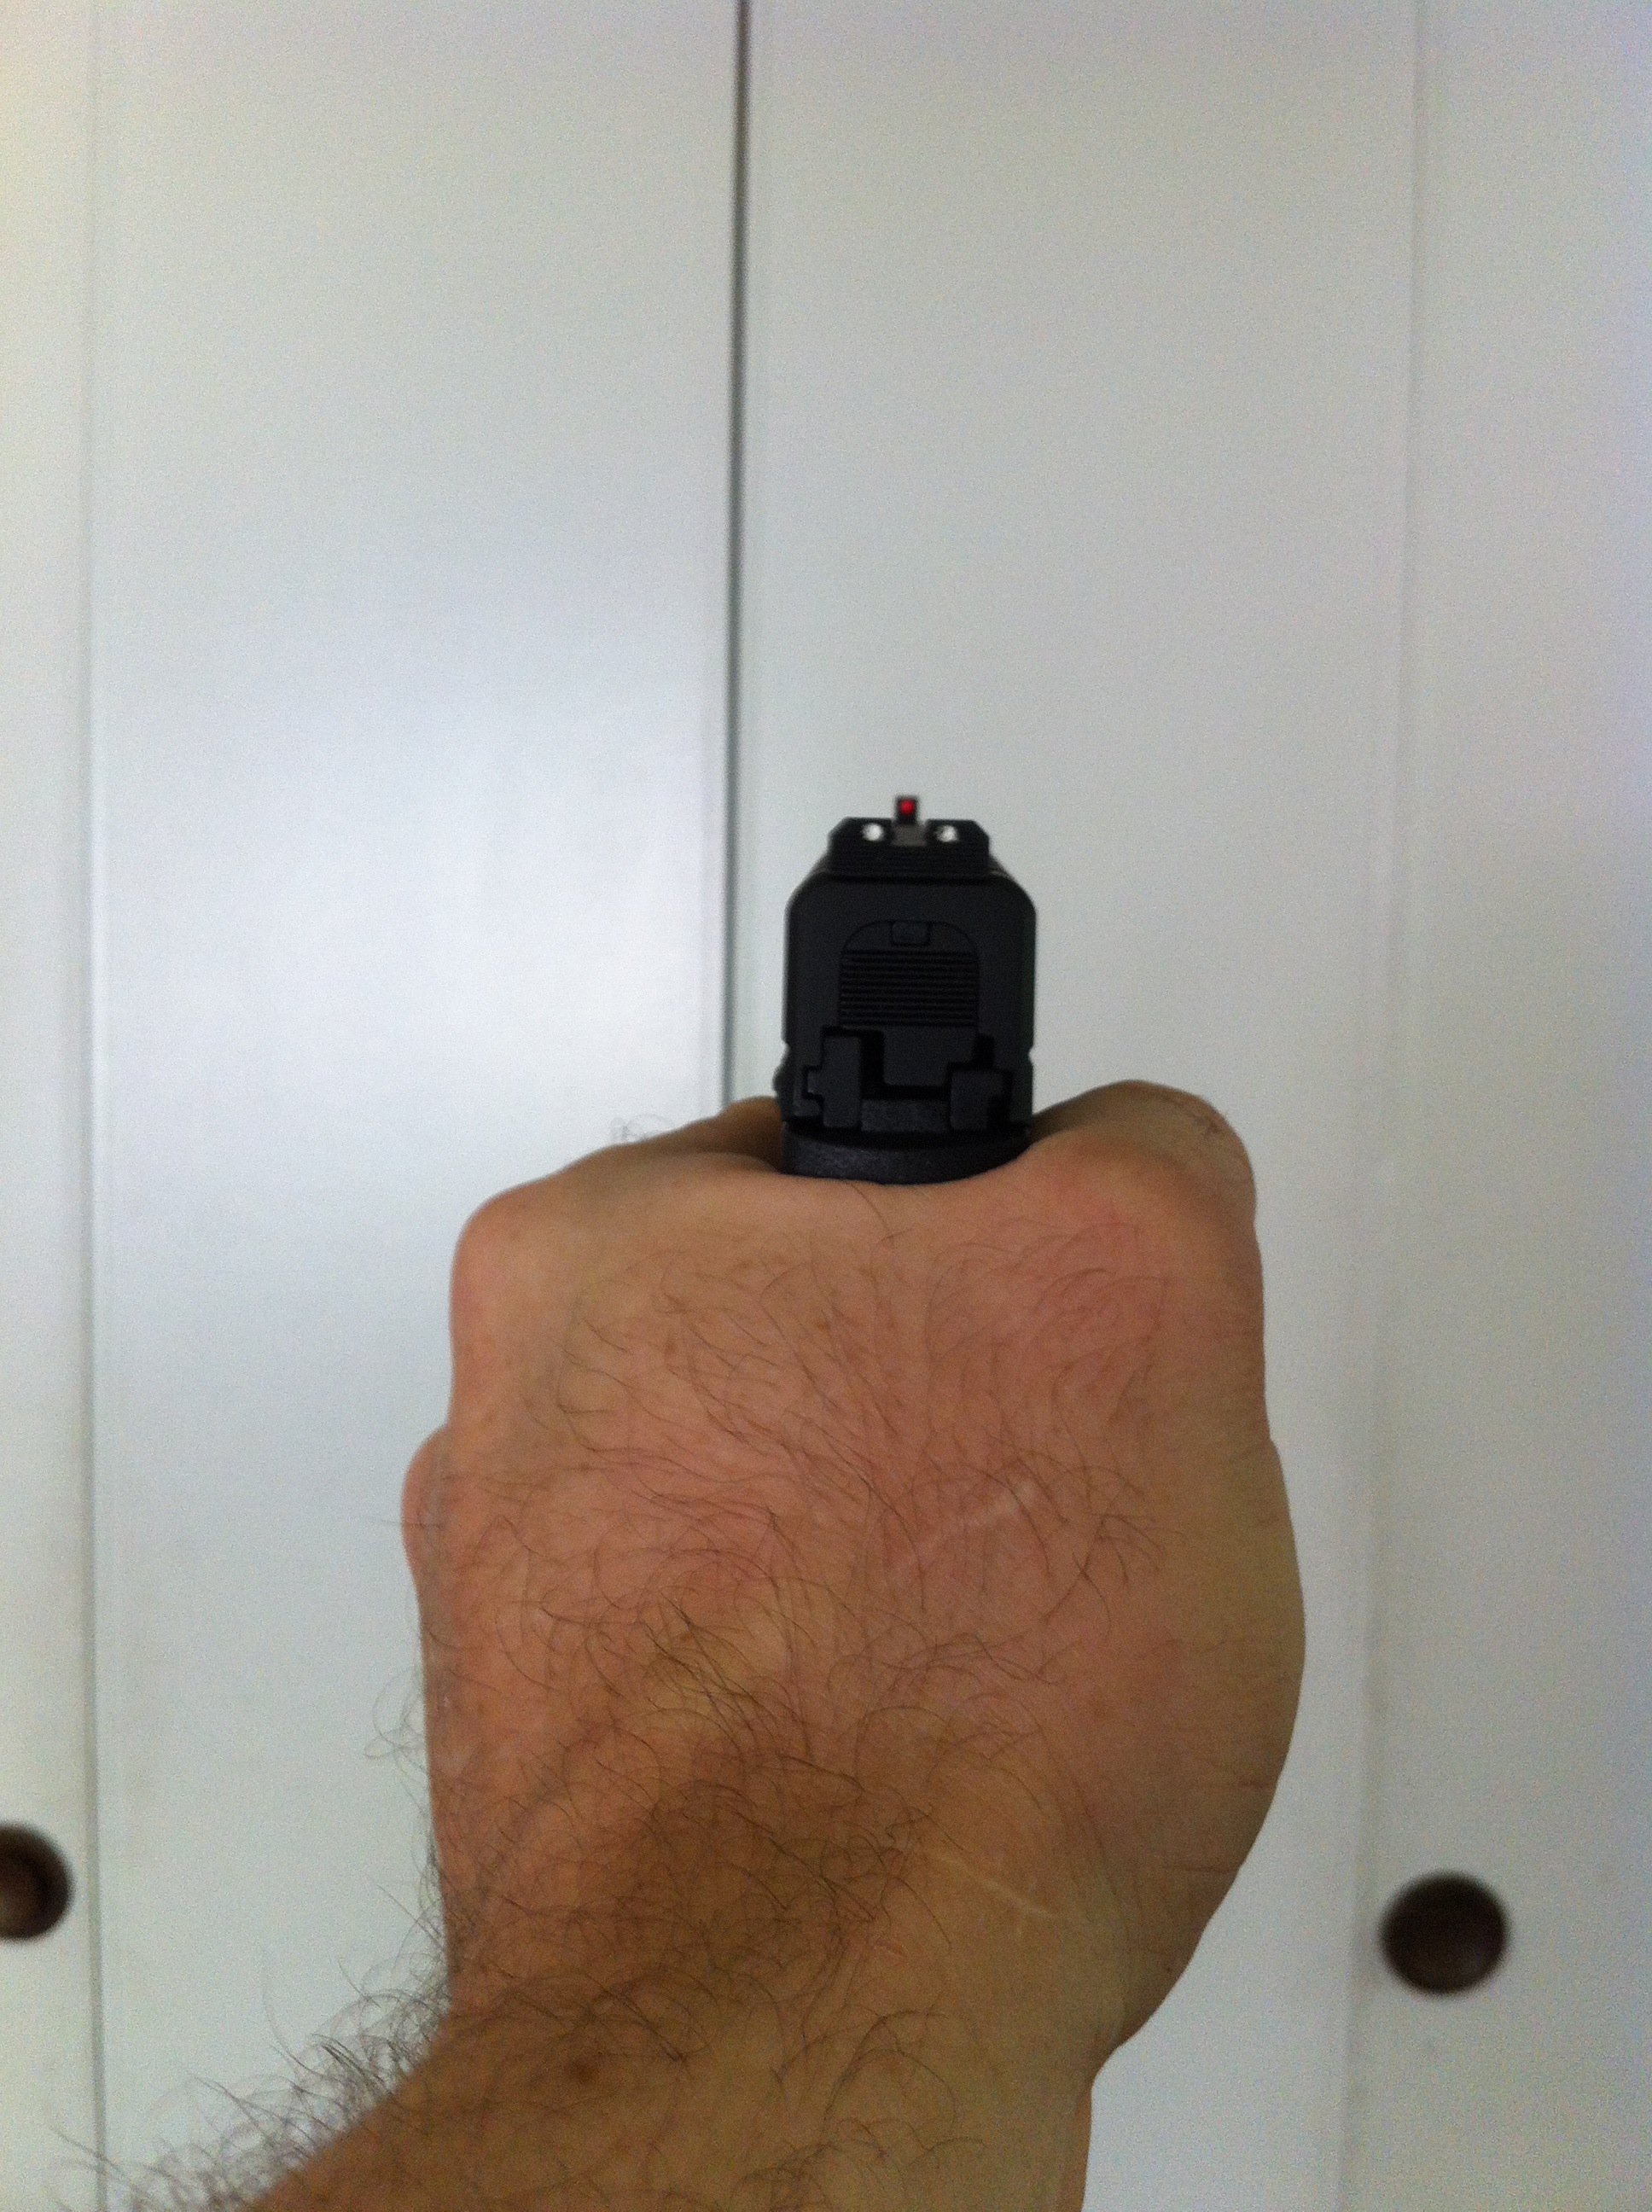 The XDS grip from the rear